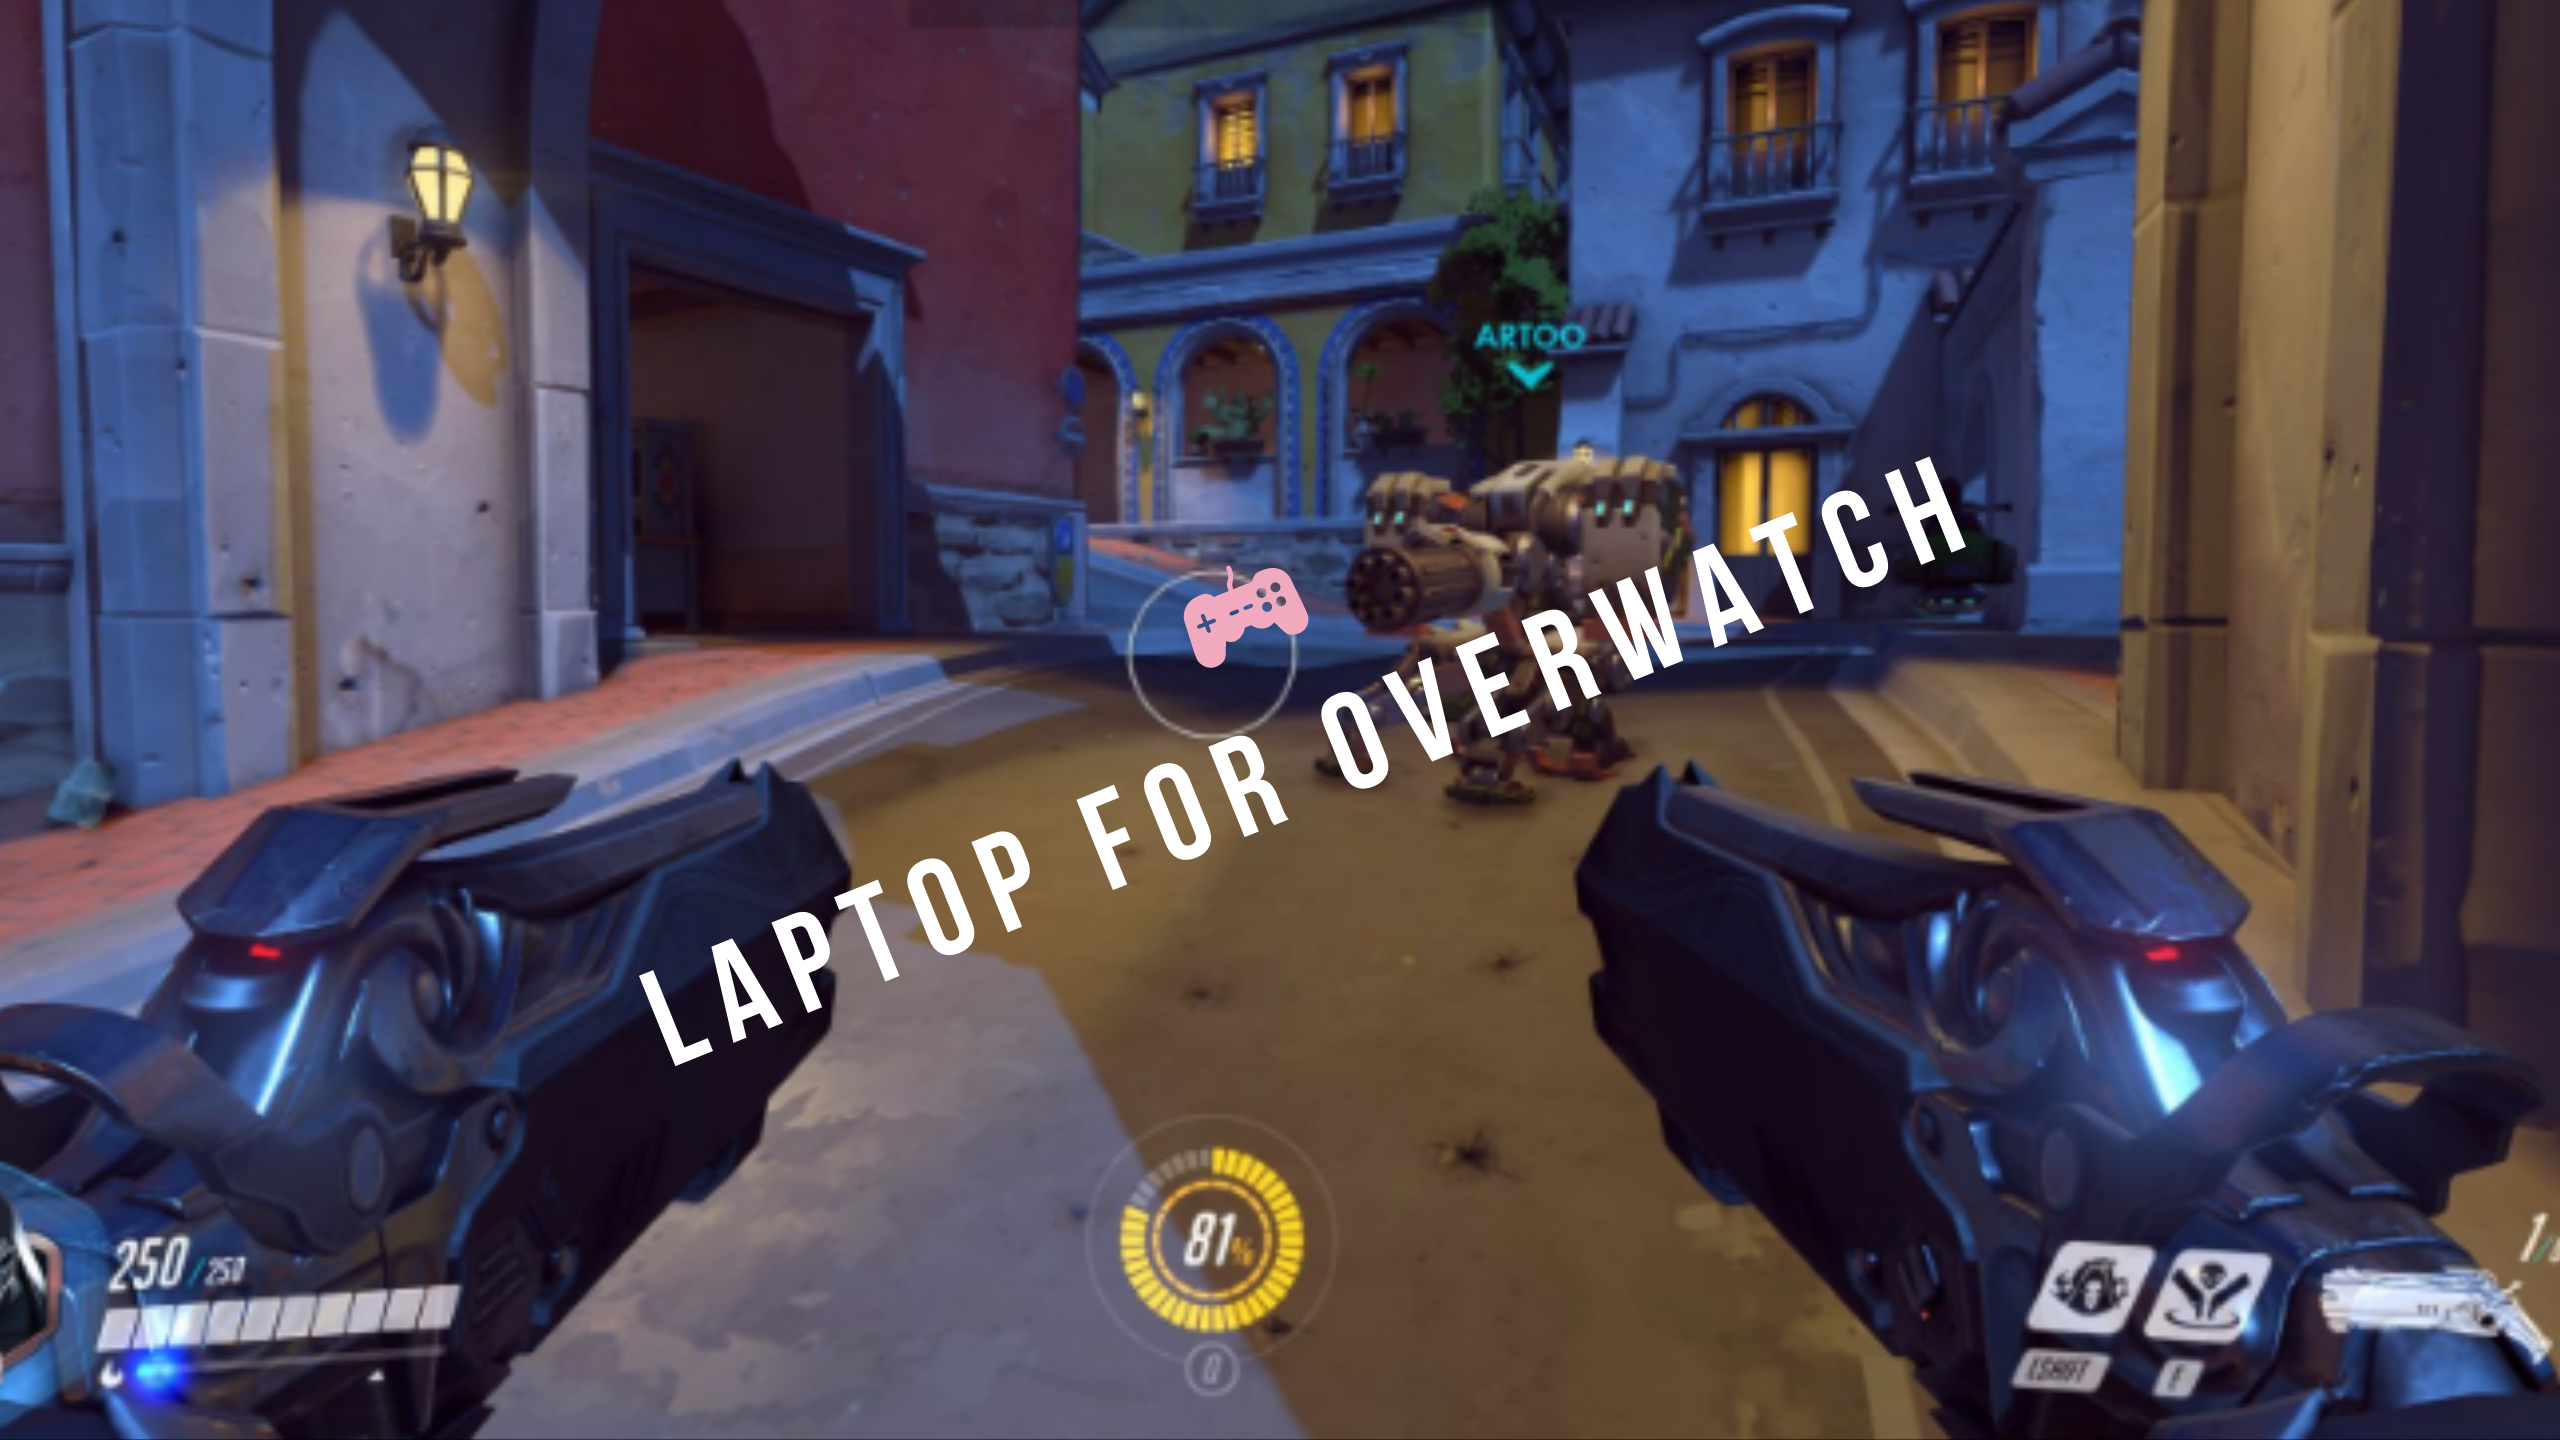 Laptop For overwatch